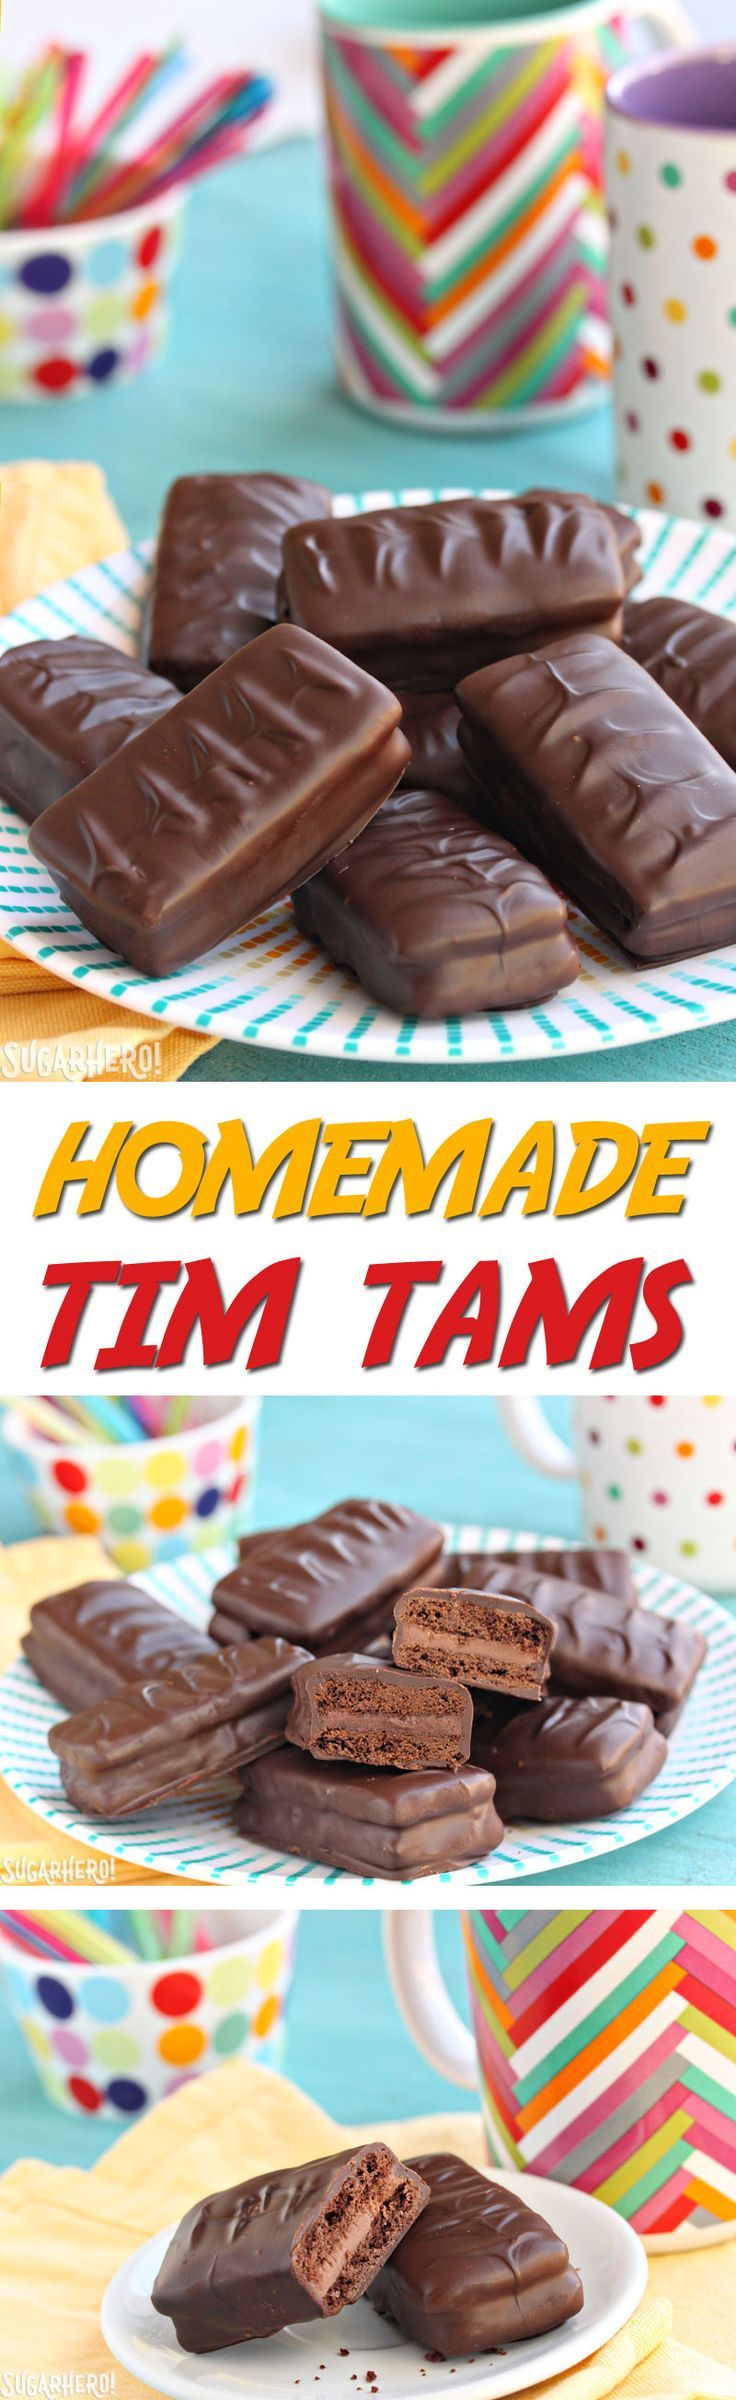 Homemade Tim Tams - chocolate cookies, chocolate malt frosting, and a chocolate coating. It's a chocolate lover's dream come true! | From SugarHero.com